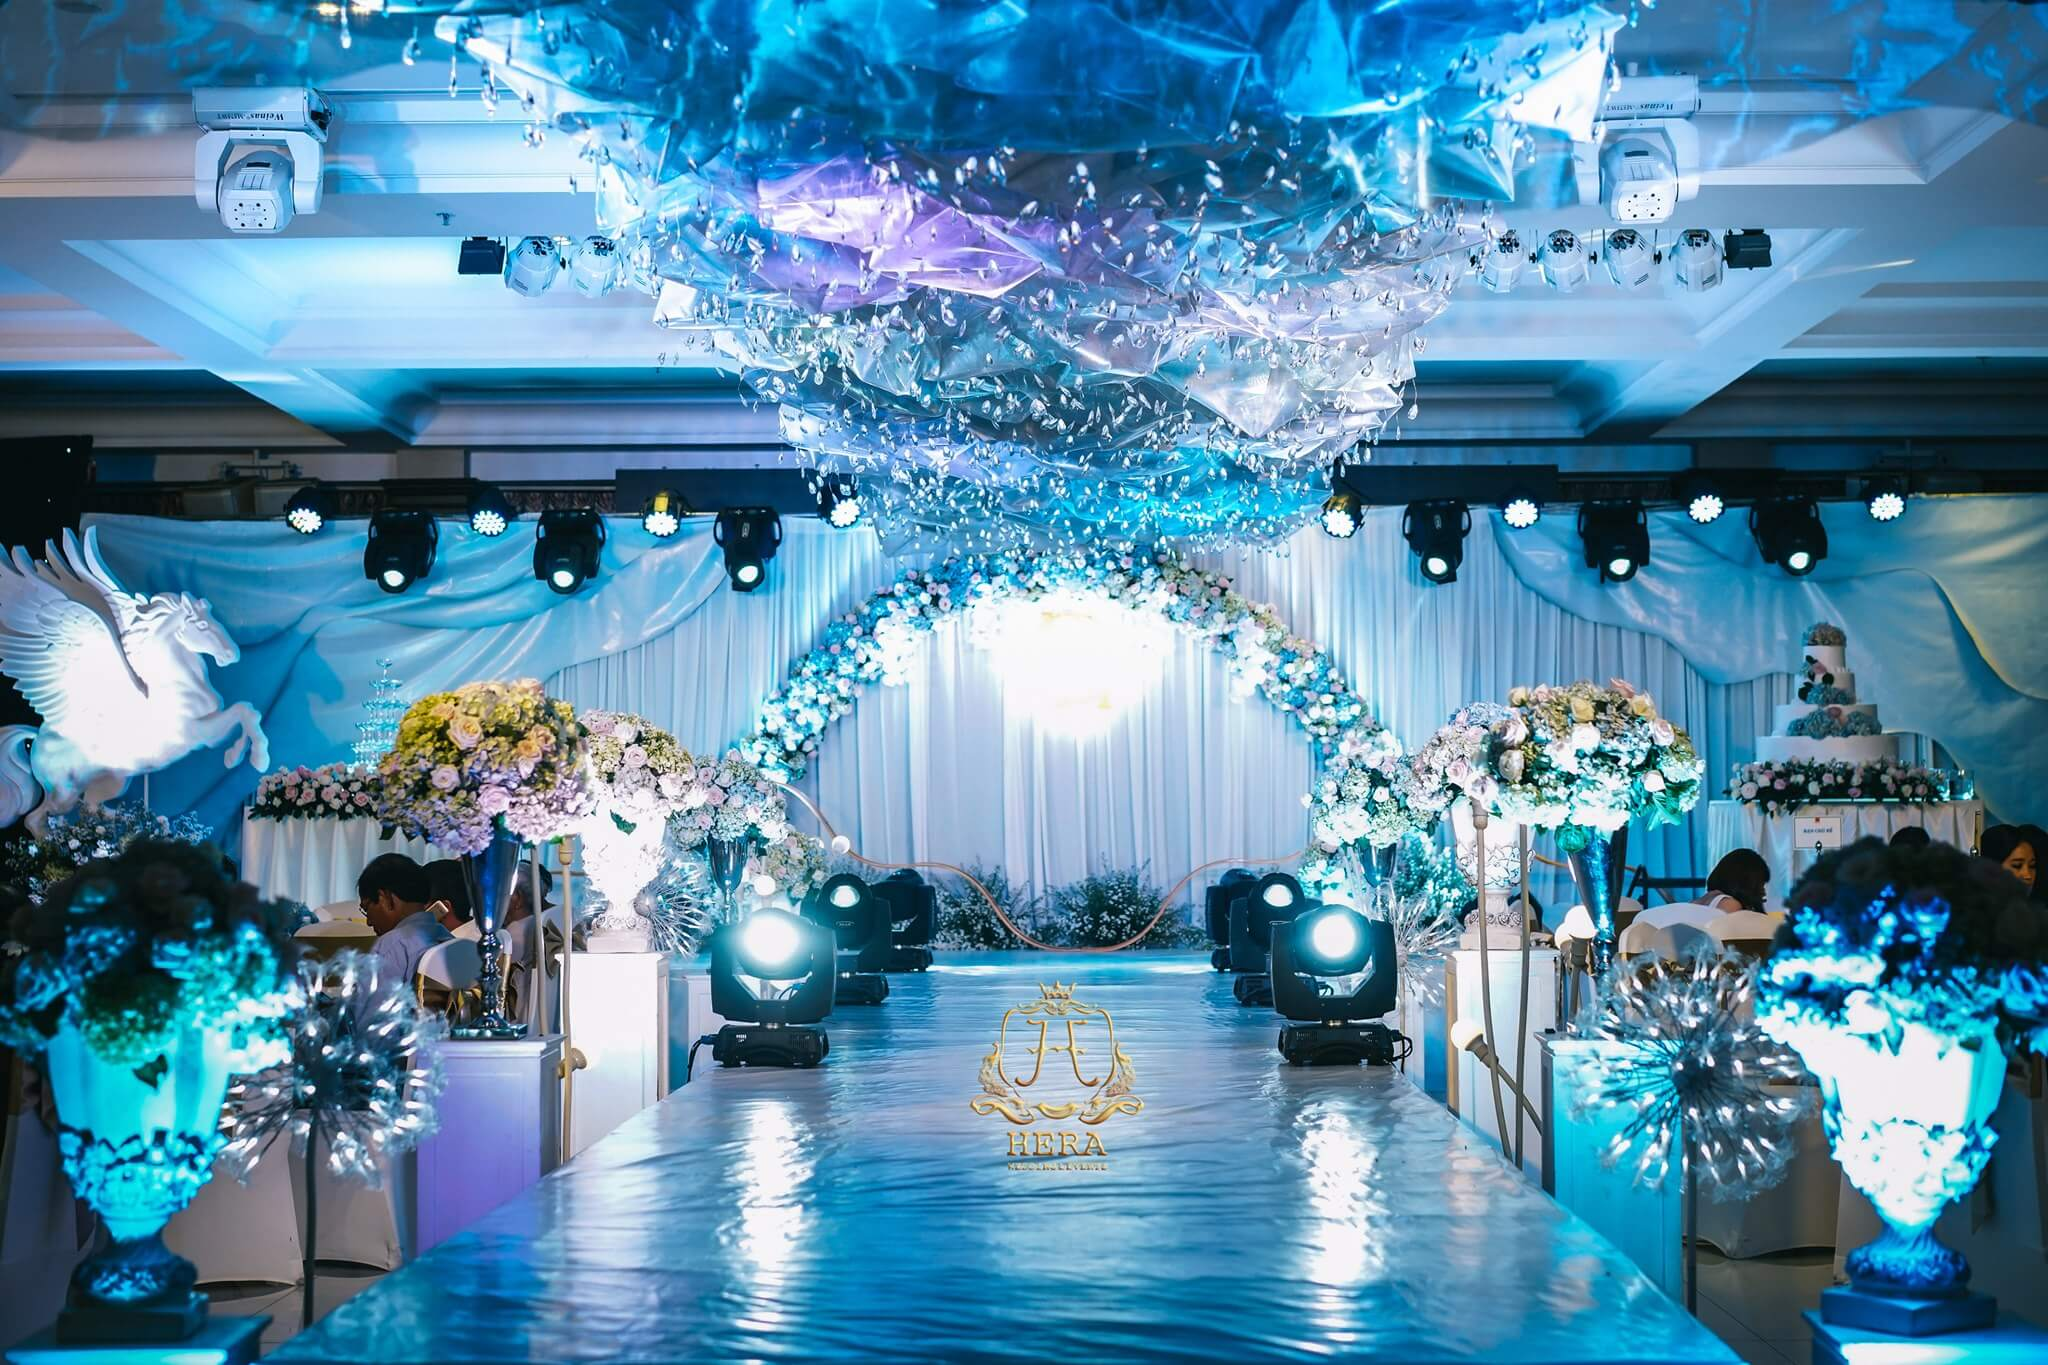 HERA Wedding & Events